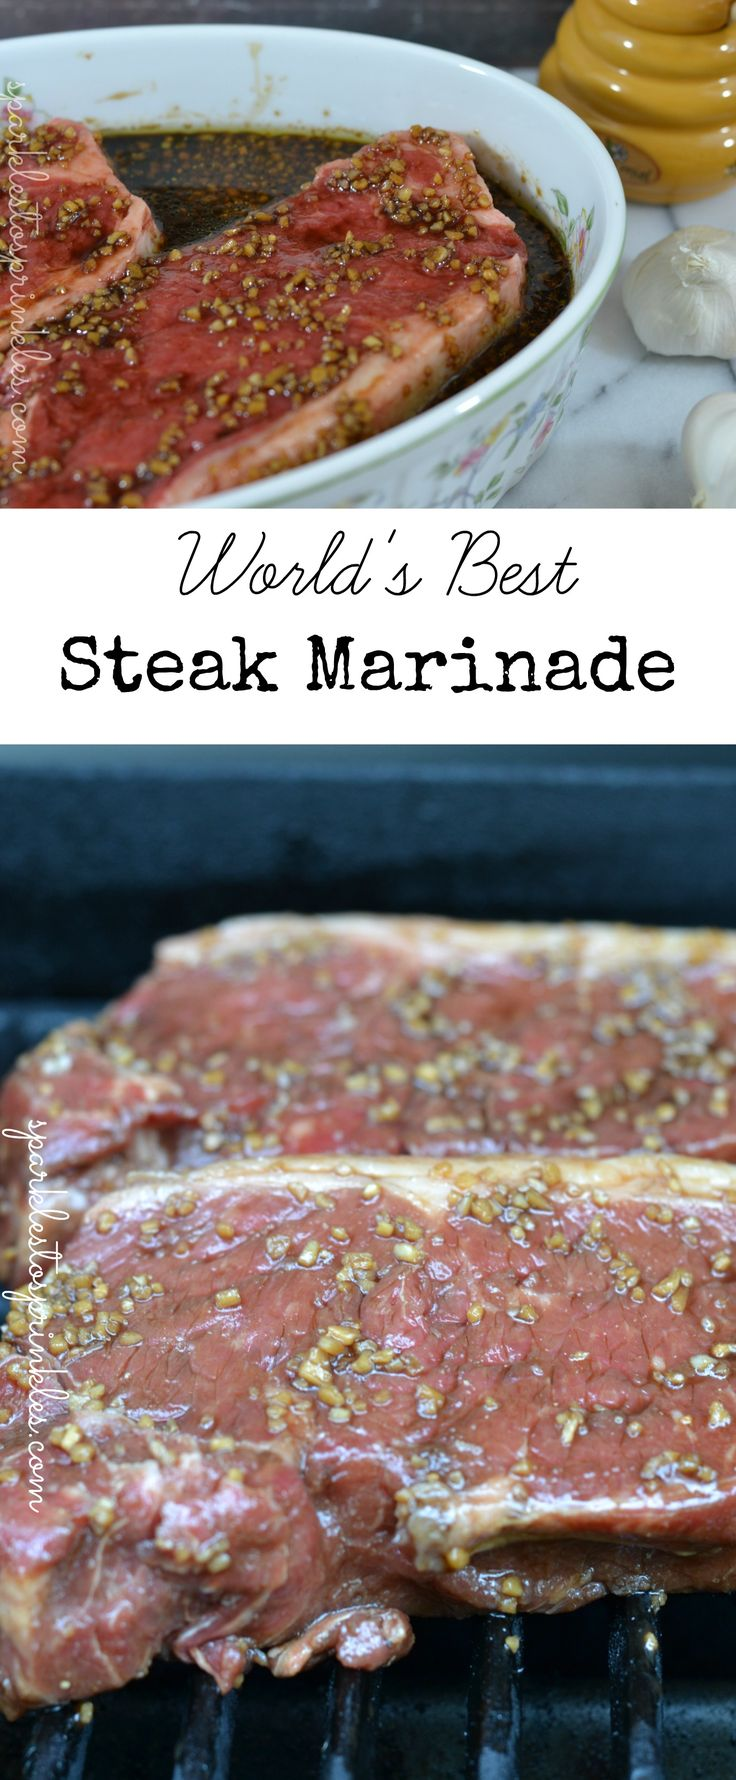 steak marinade recipes low sodium steak recipes healthy steak marinade ...